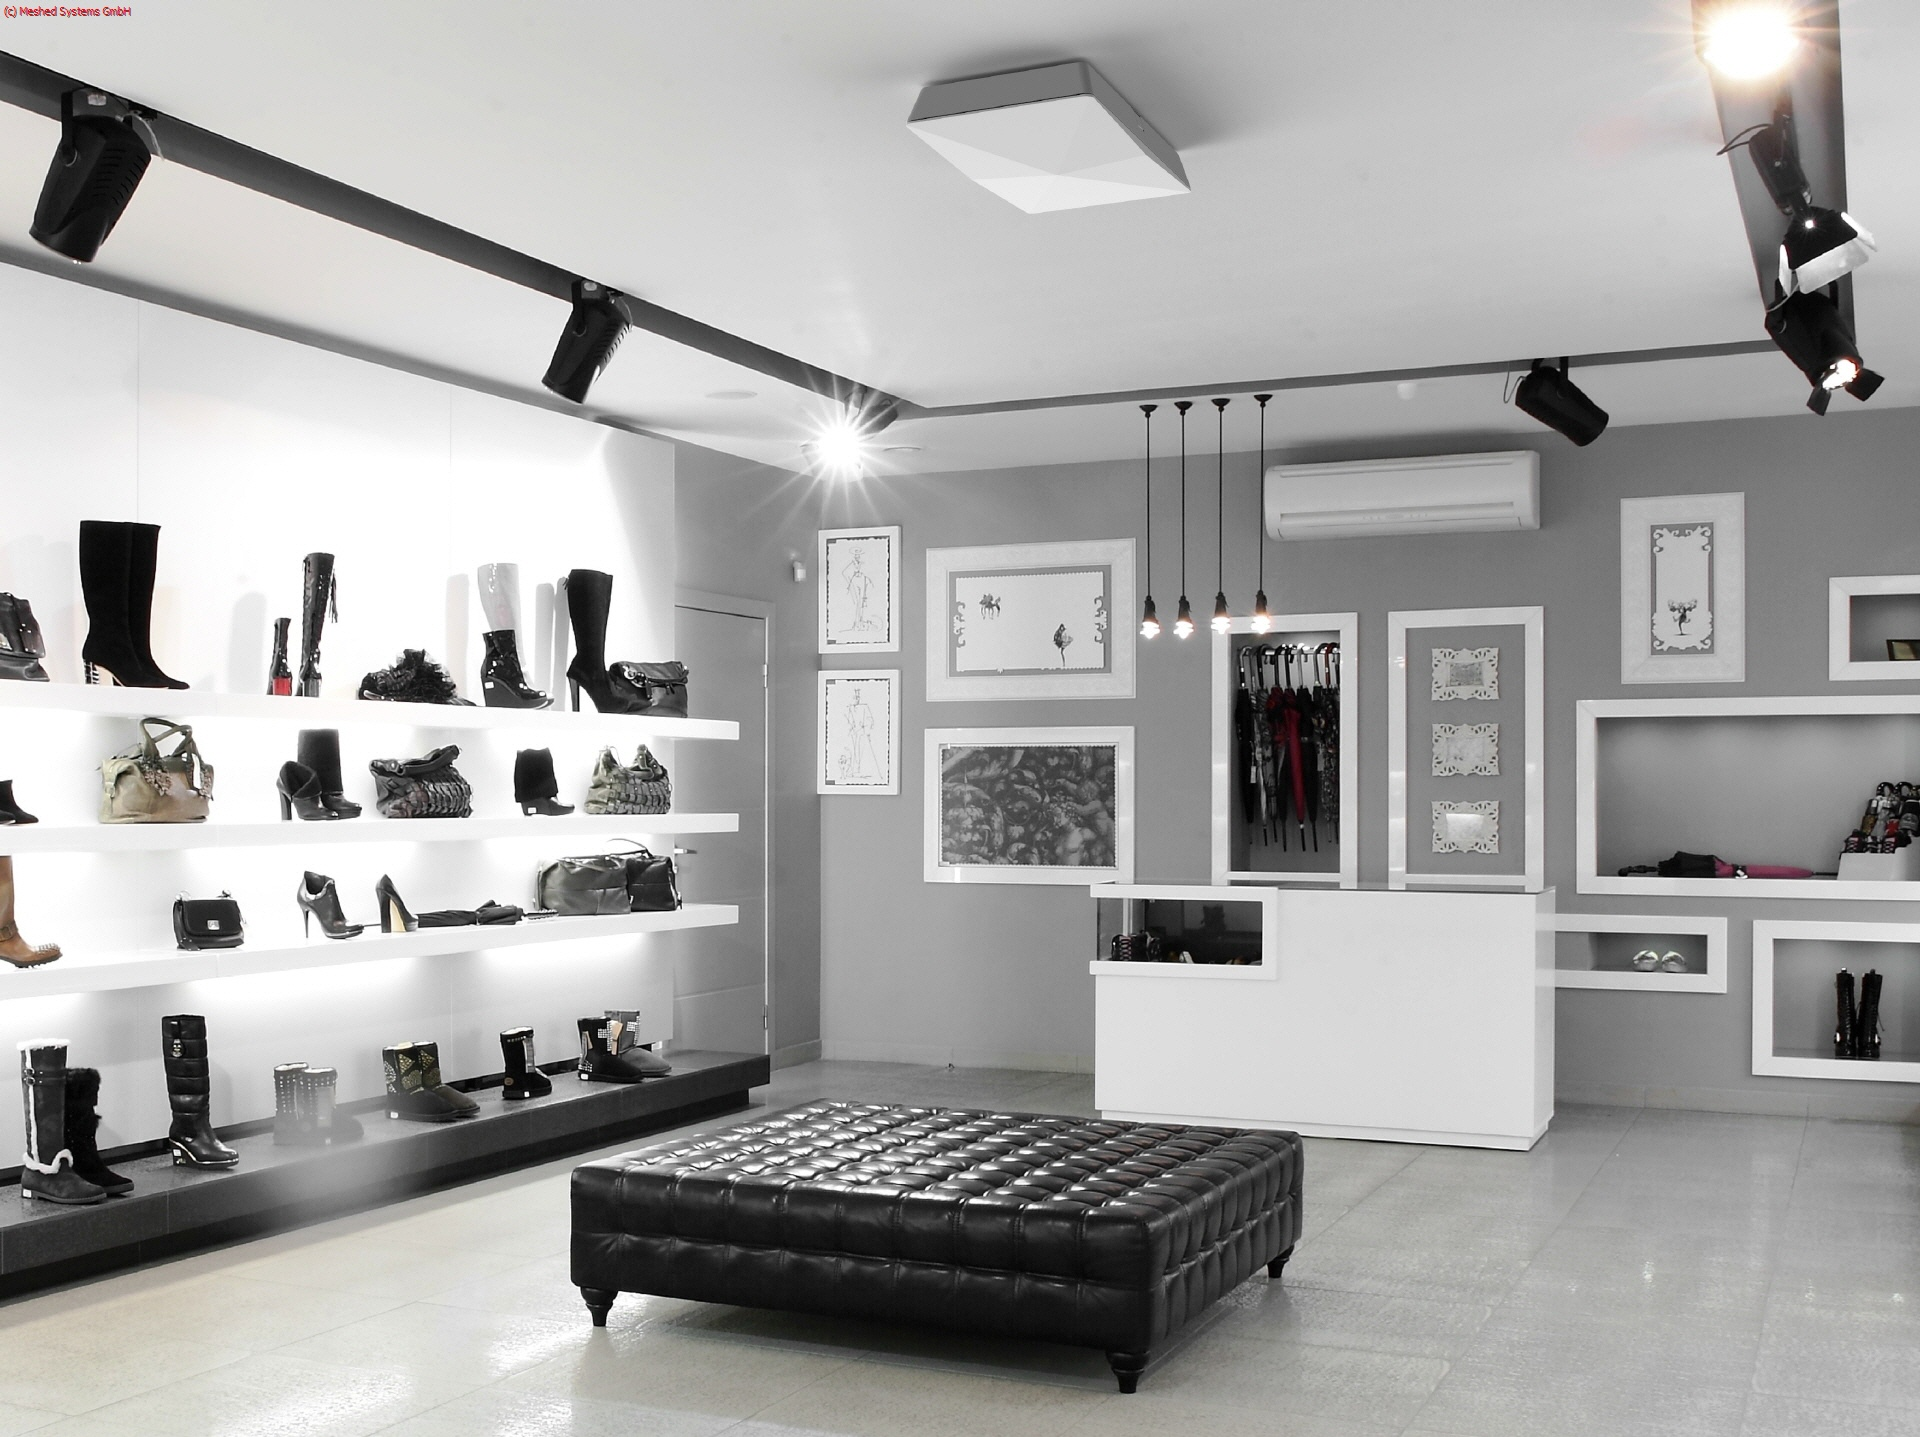 Designer shoes neatly displayed on shelves with RFID tags